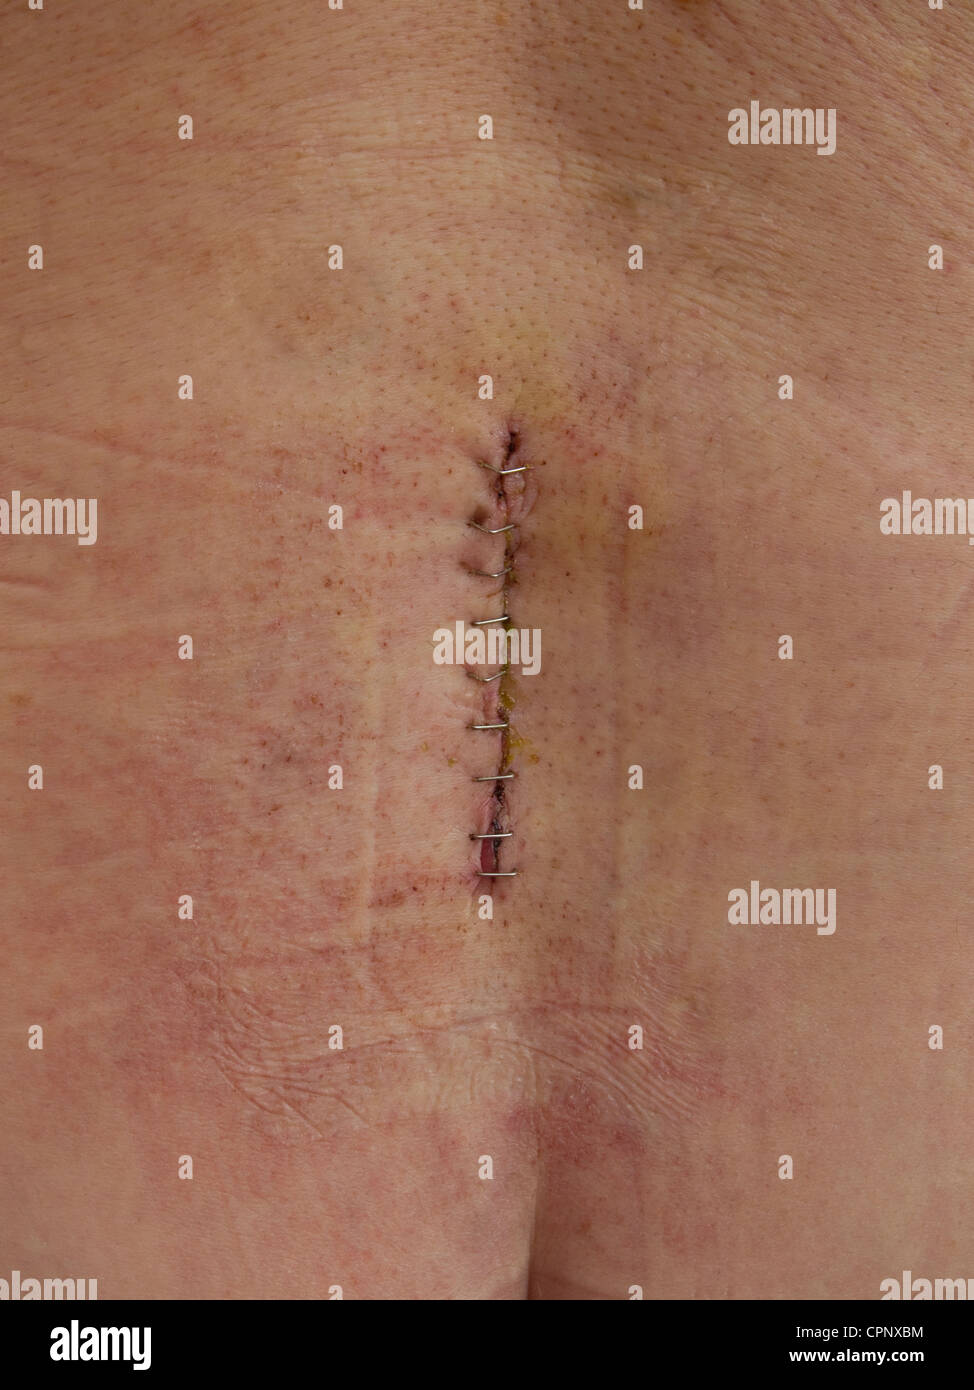 The wound site of a lumbar discectomy to remove herniated disc material in a male, held together by metal clips - Stock Image